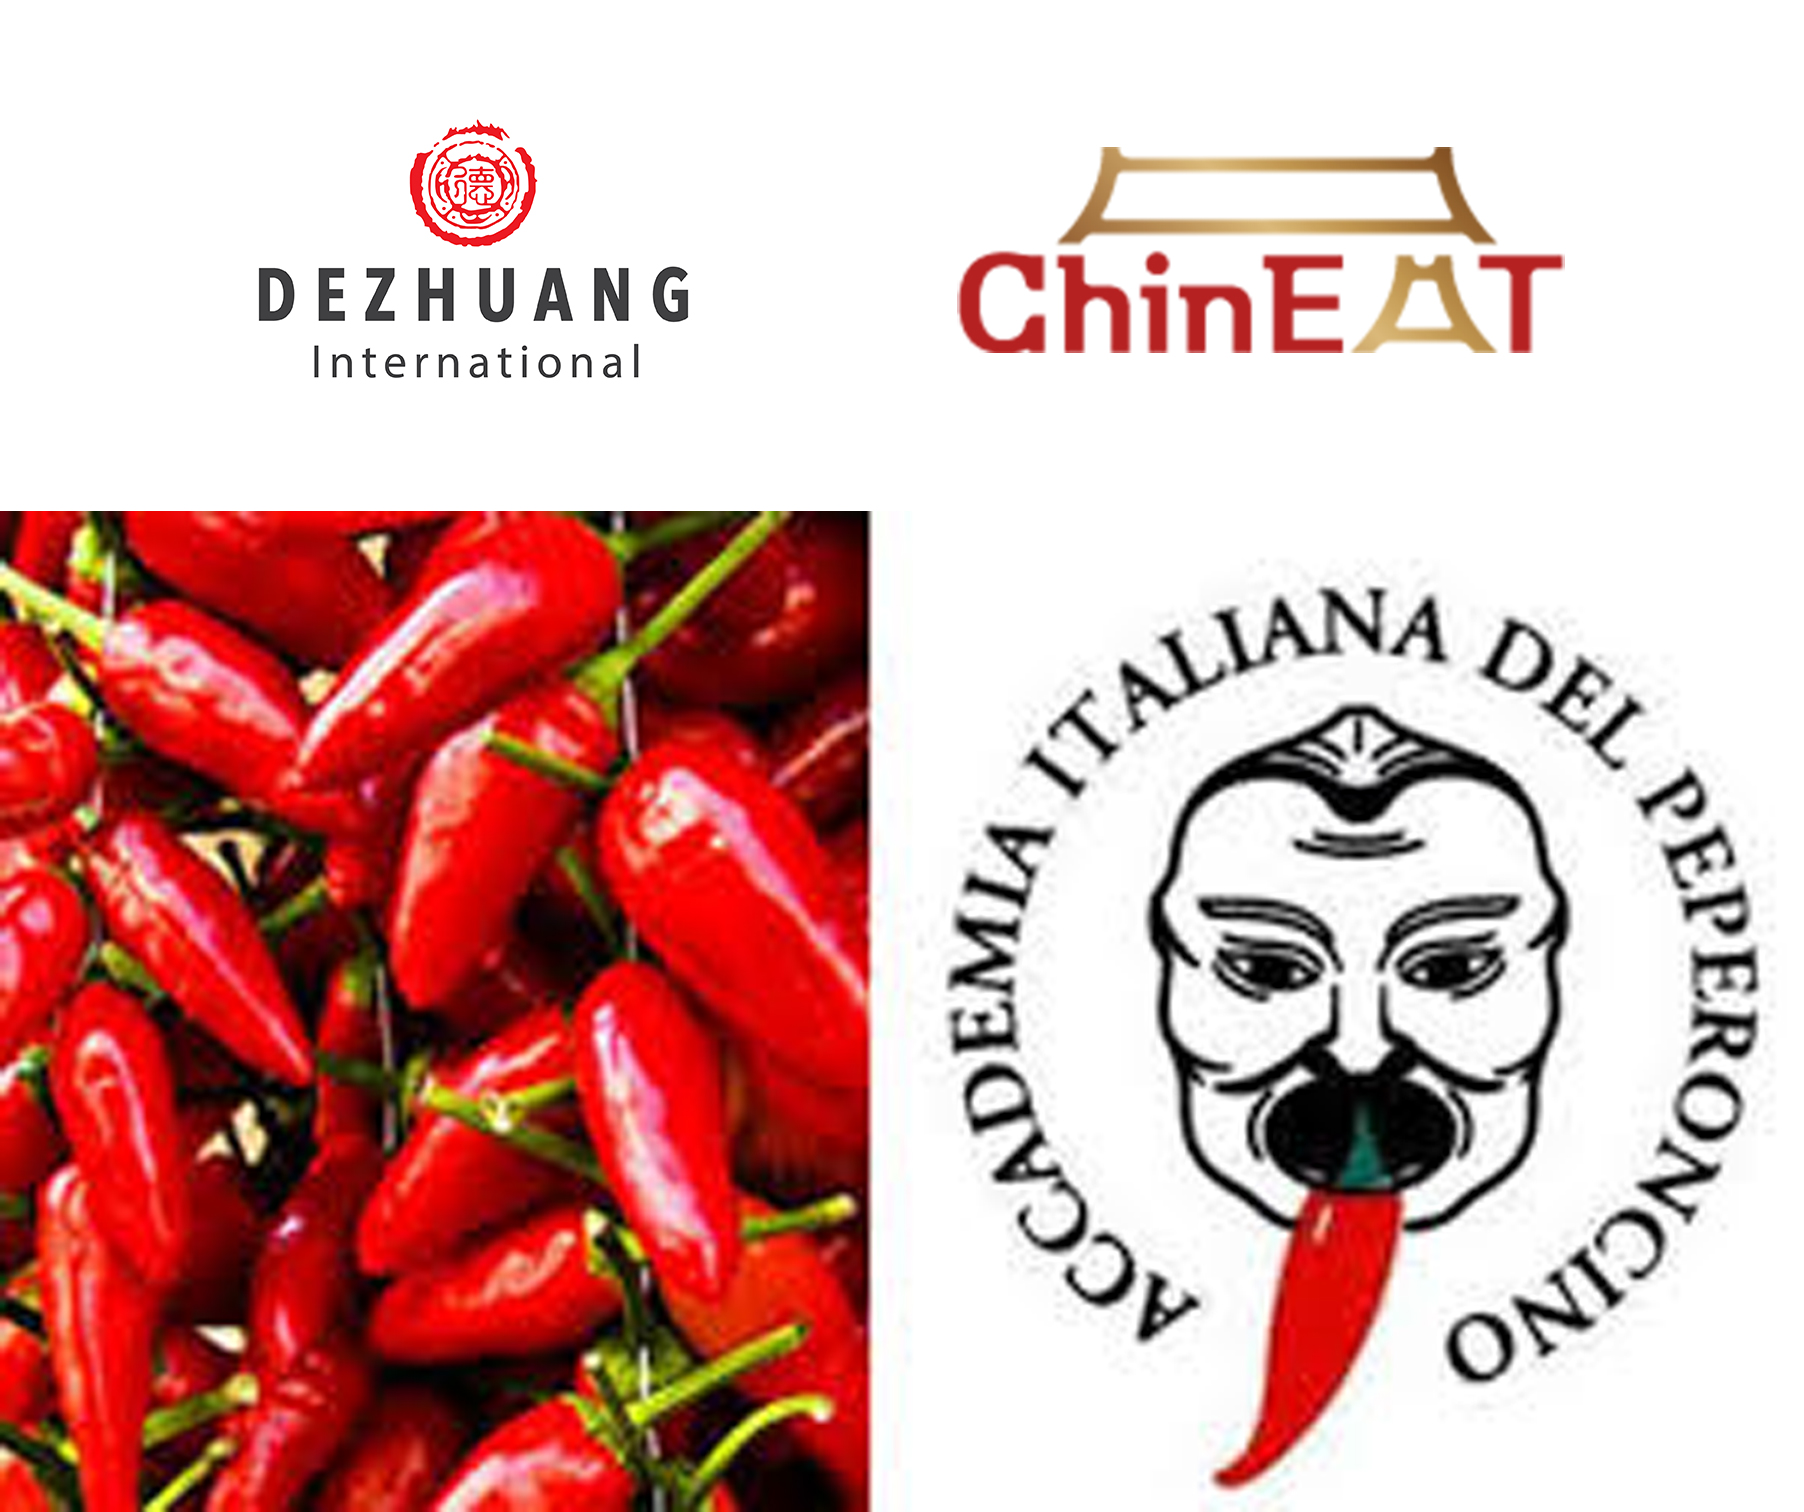 DeZhuang International Team at 25th Peperoncino Festival in Diamante